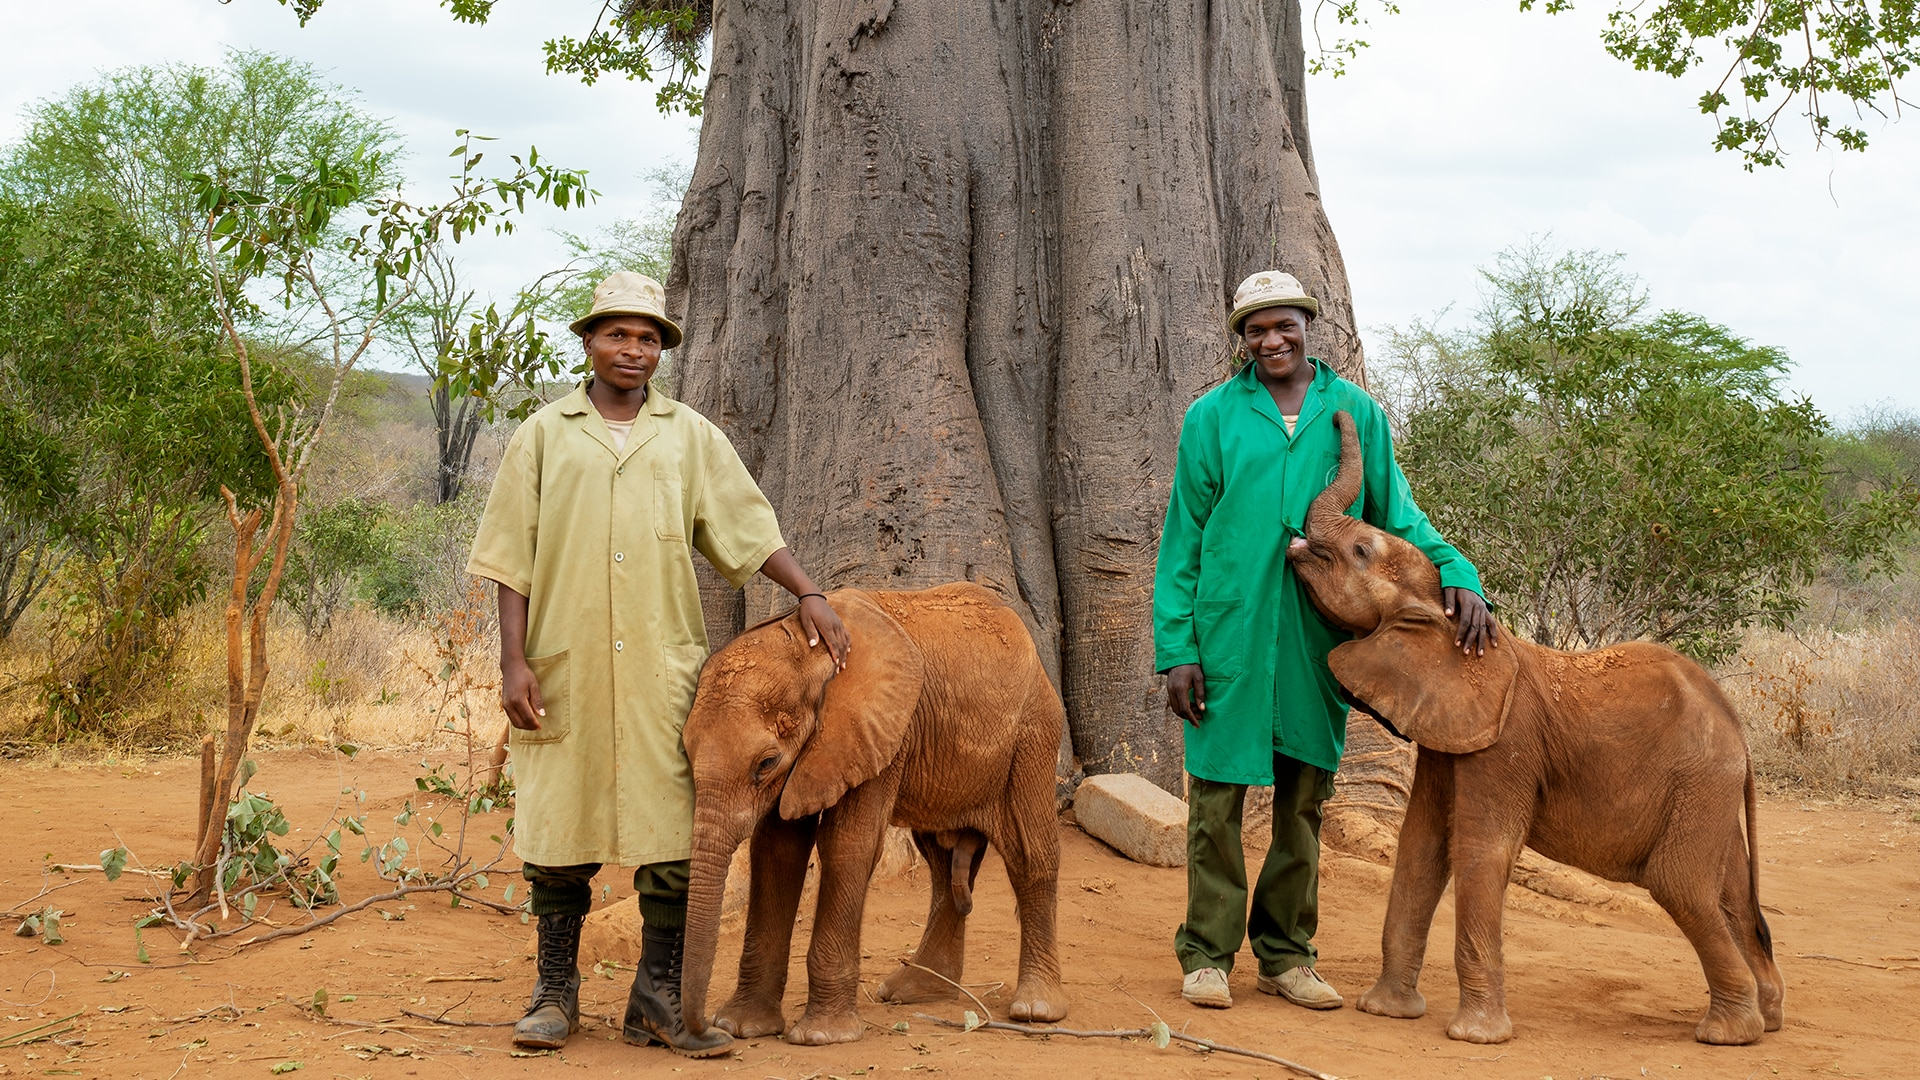 Two men standing with baby elephants